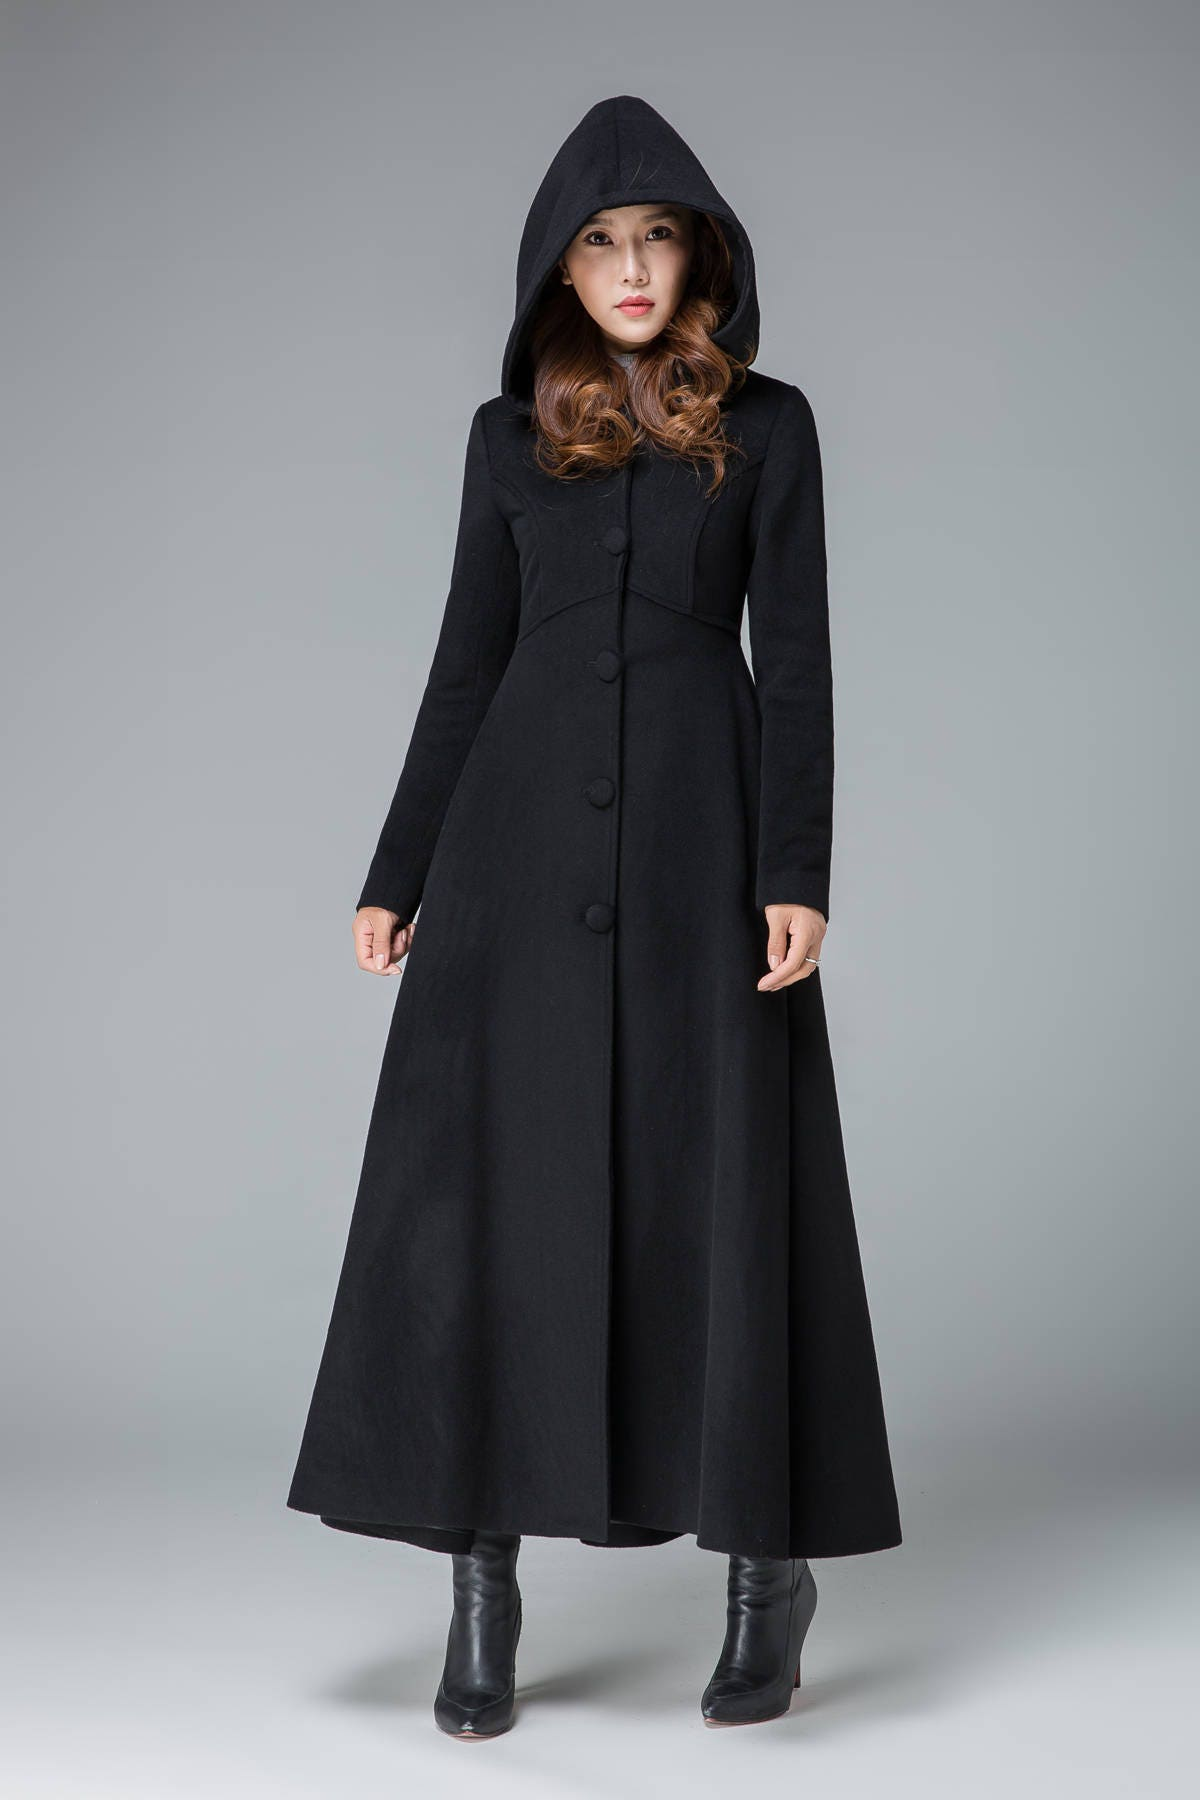 Shop the latest styles of Womens Raincoat Coats at Macys. Check out our designer collection of chic coats including peacoats, trench coats, puffer coats and more! Long (11) Mid Length (79) Short (7) DKNY Hooded Raincoat, Created for Macy's.